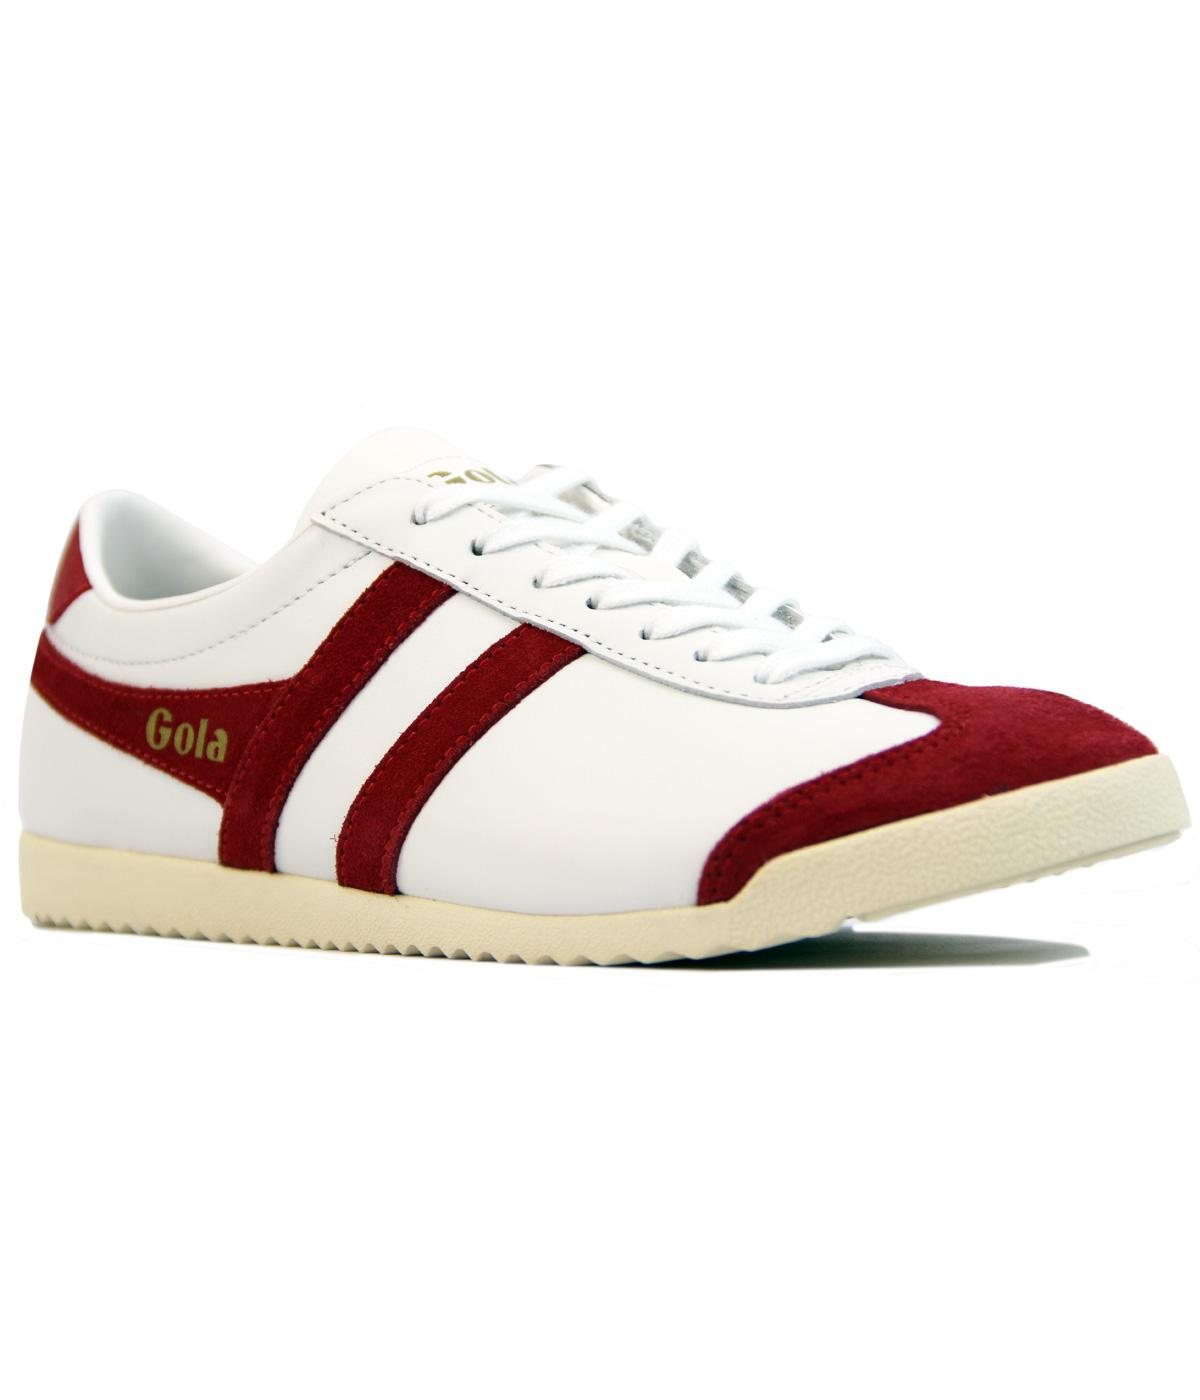 GOLA Bullet Retro 70s Mens Indie Leather Trainers